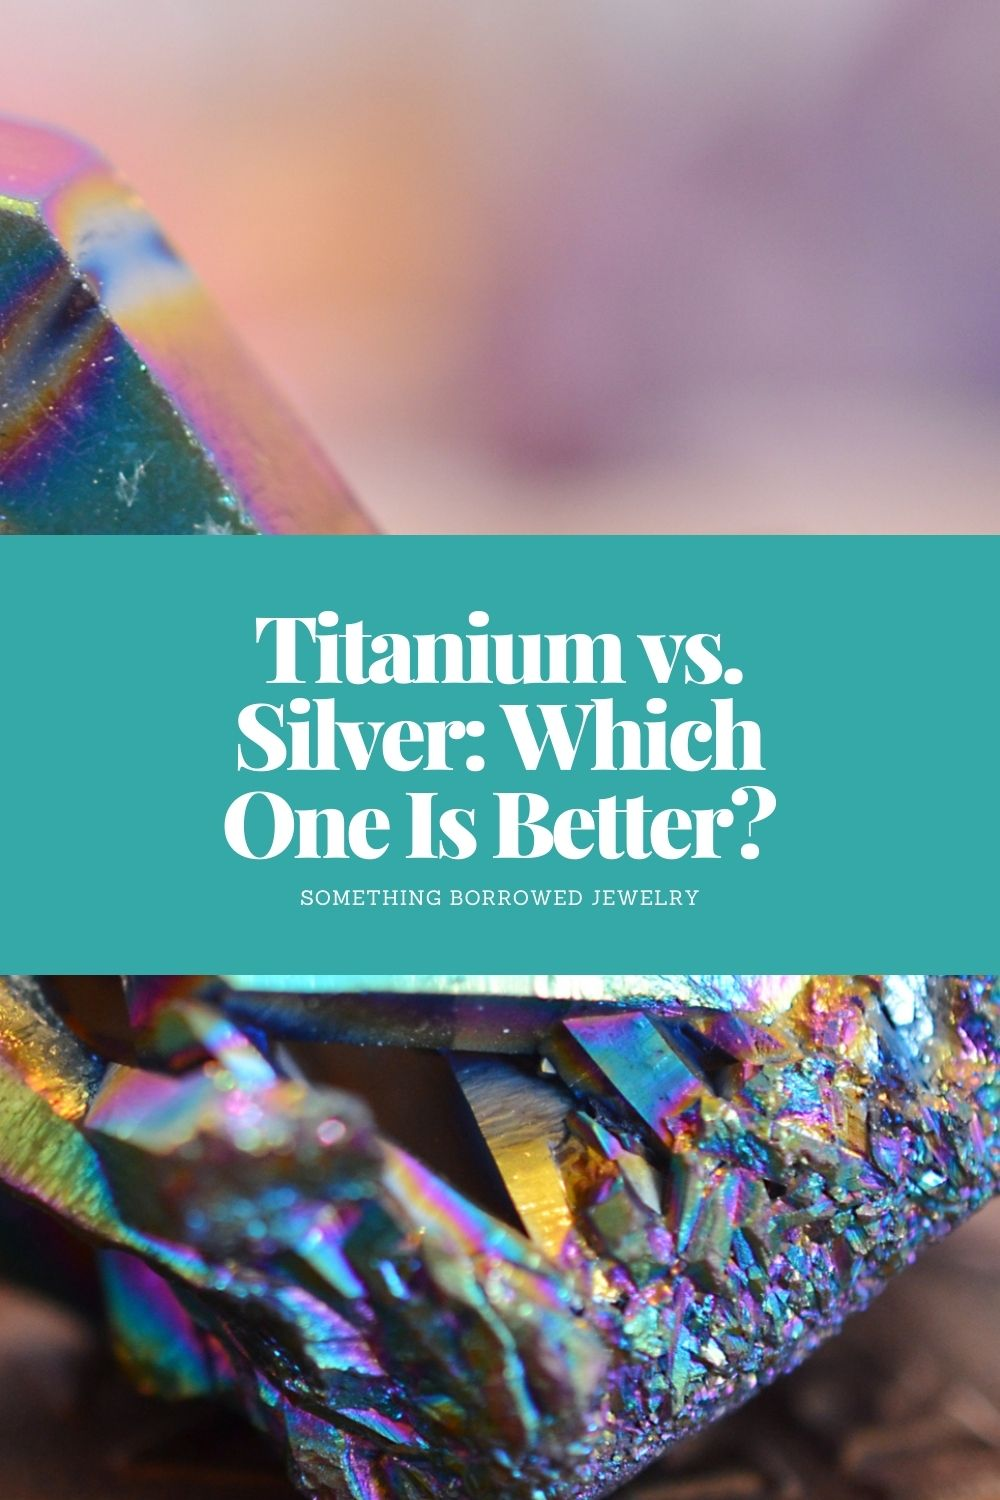 Titanium vs. Silver Which One Is Better pin 2